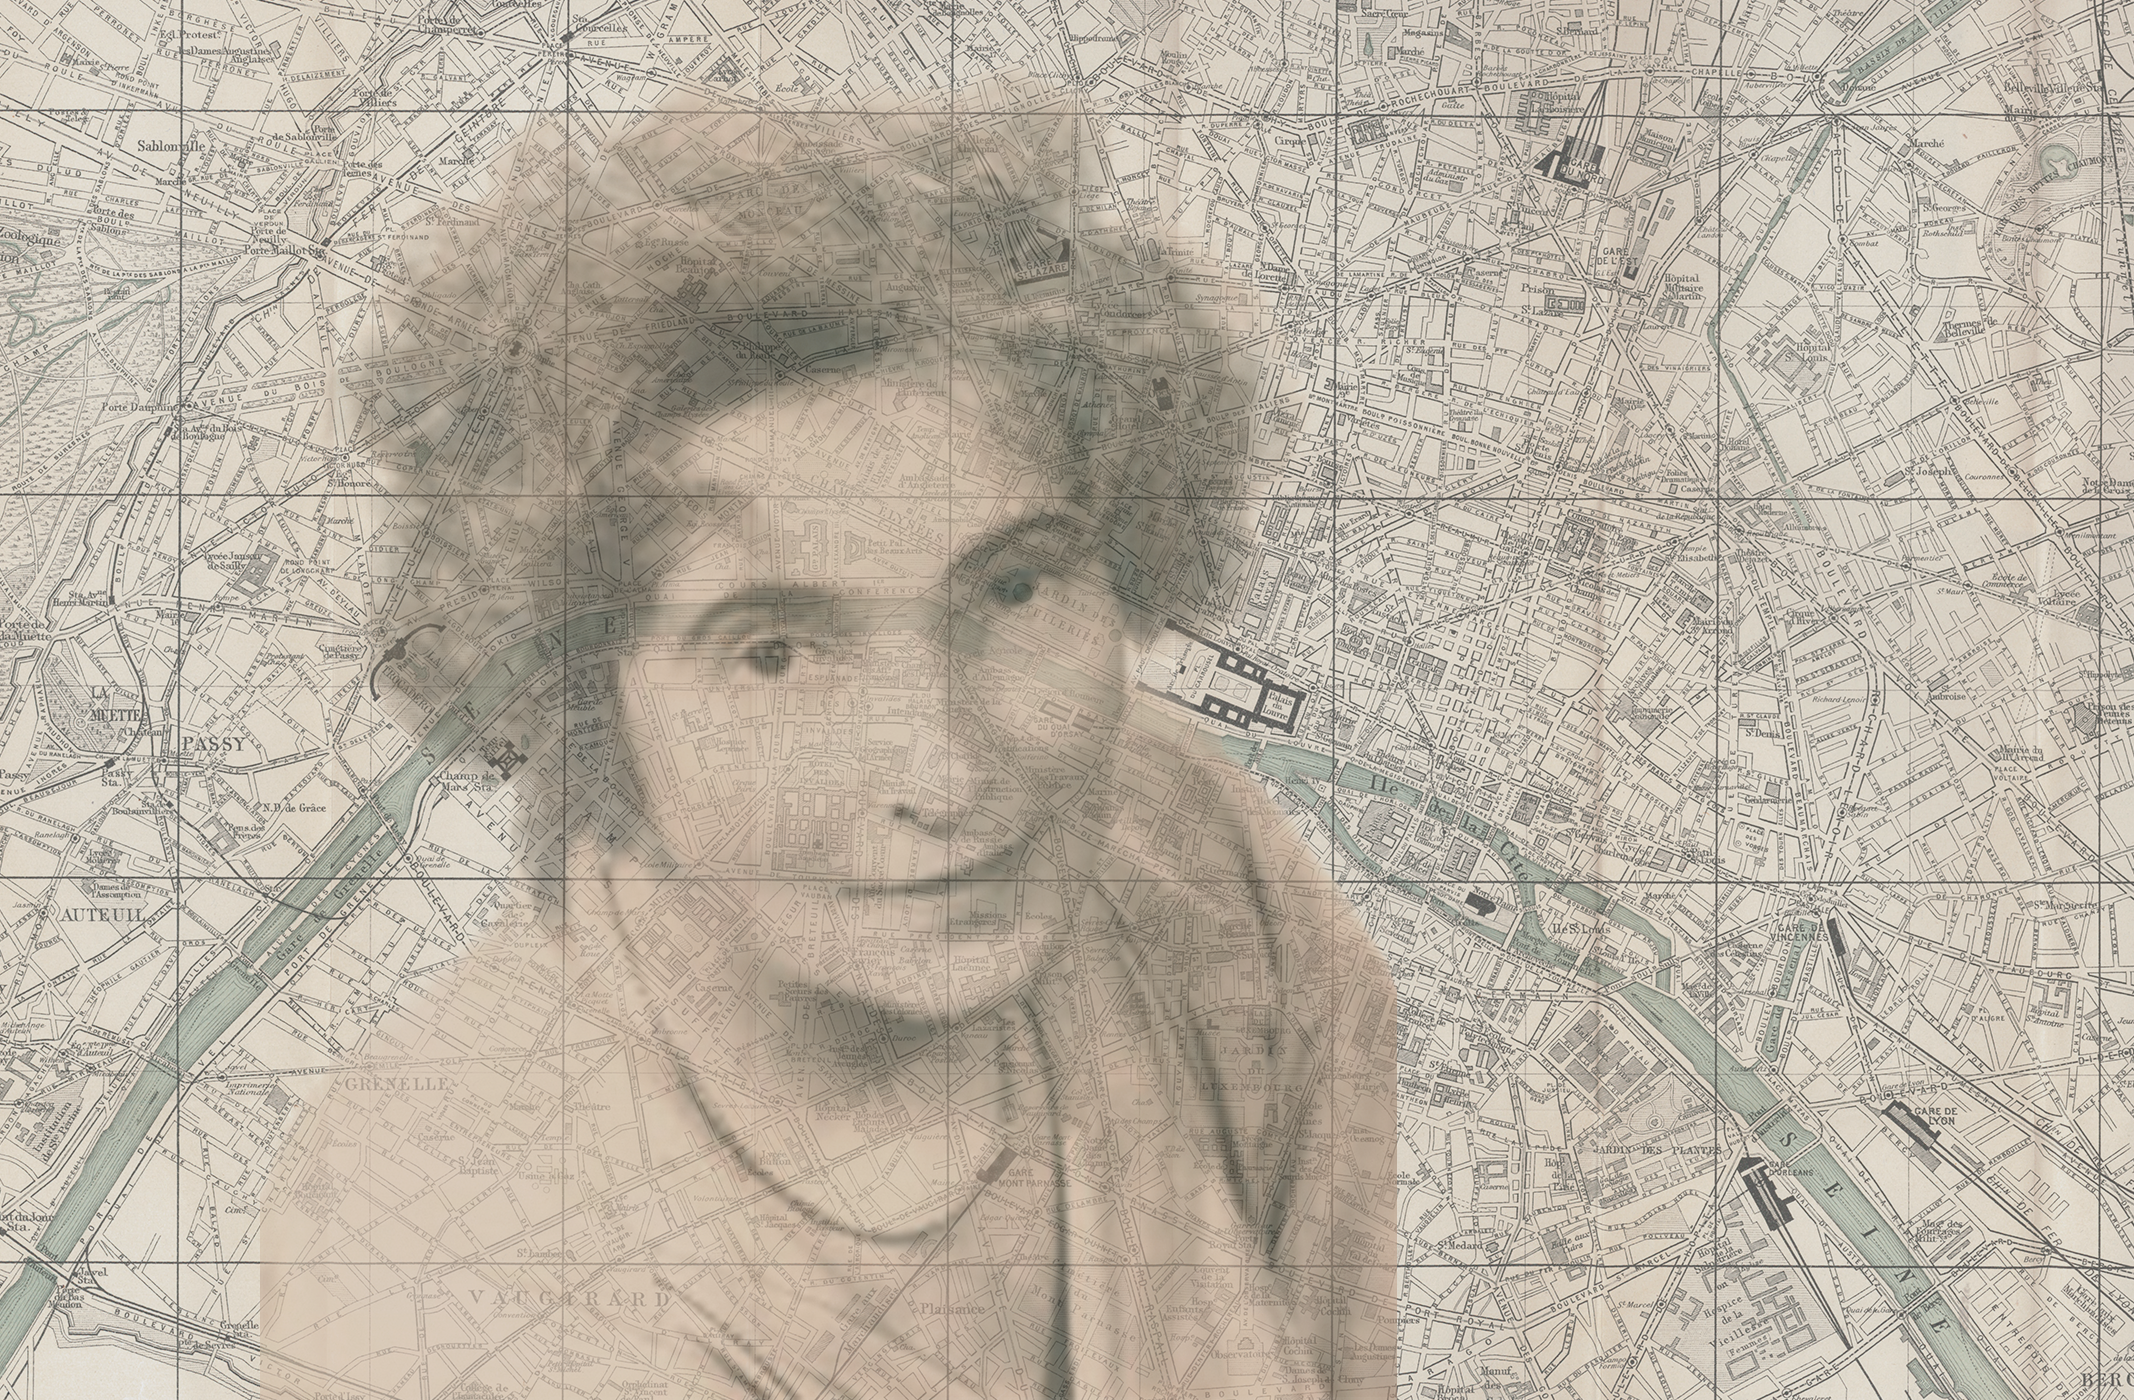 Mina Loy superimposed on Paris map